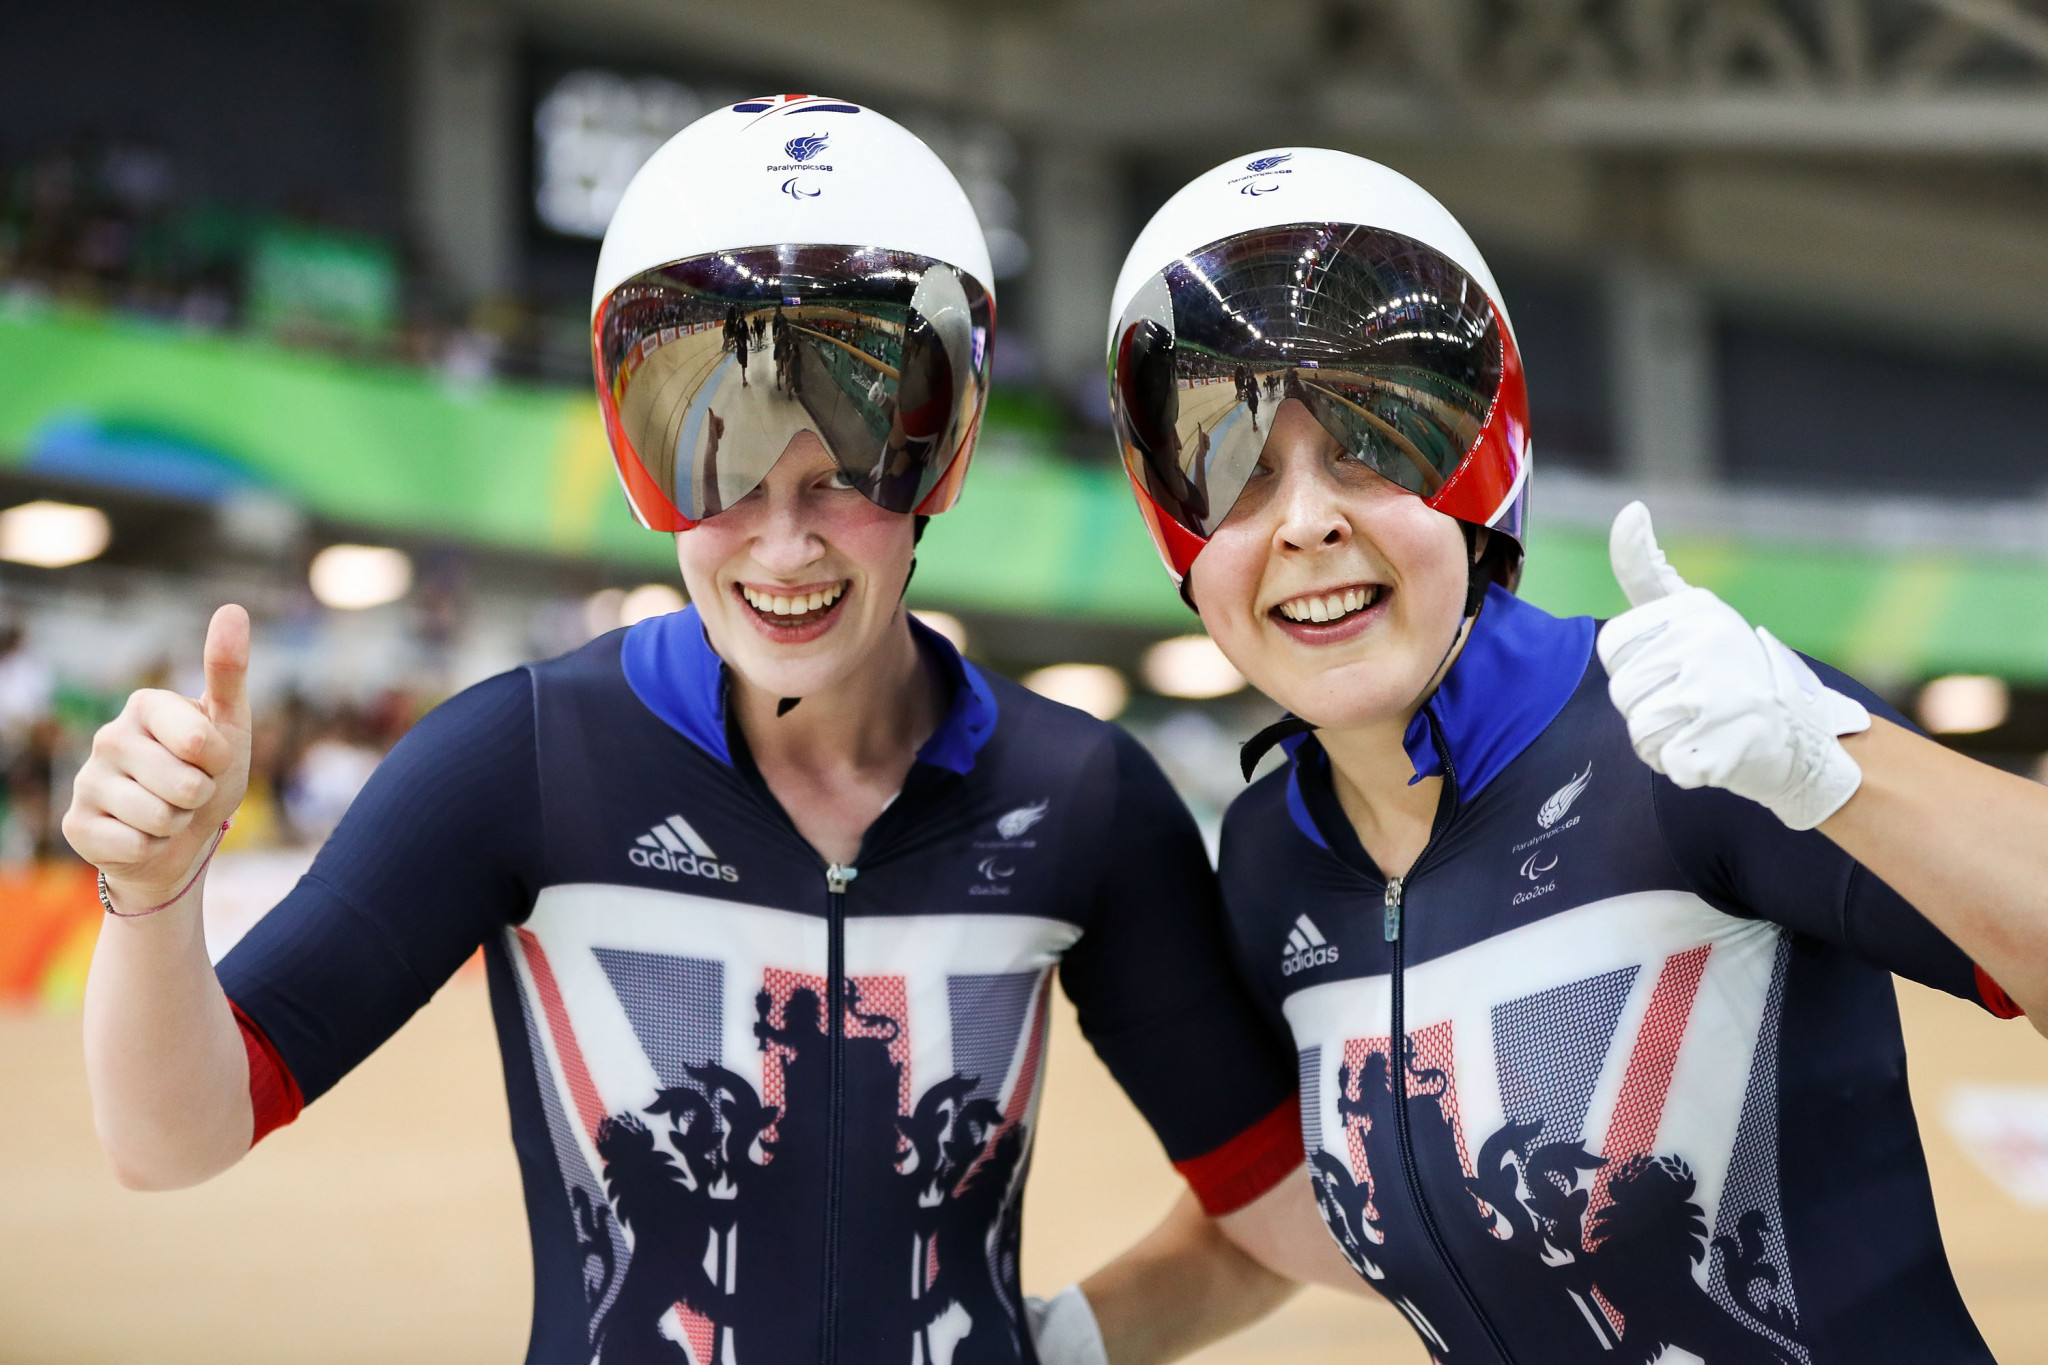 Sophie Thornhill and Helen Scott broke their second world record in as many days ©Getty Images